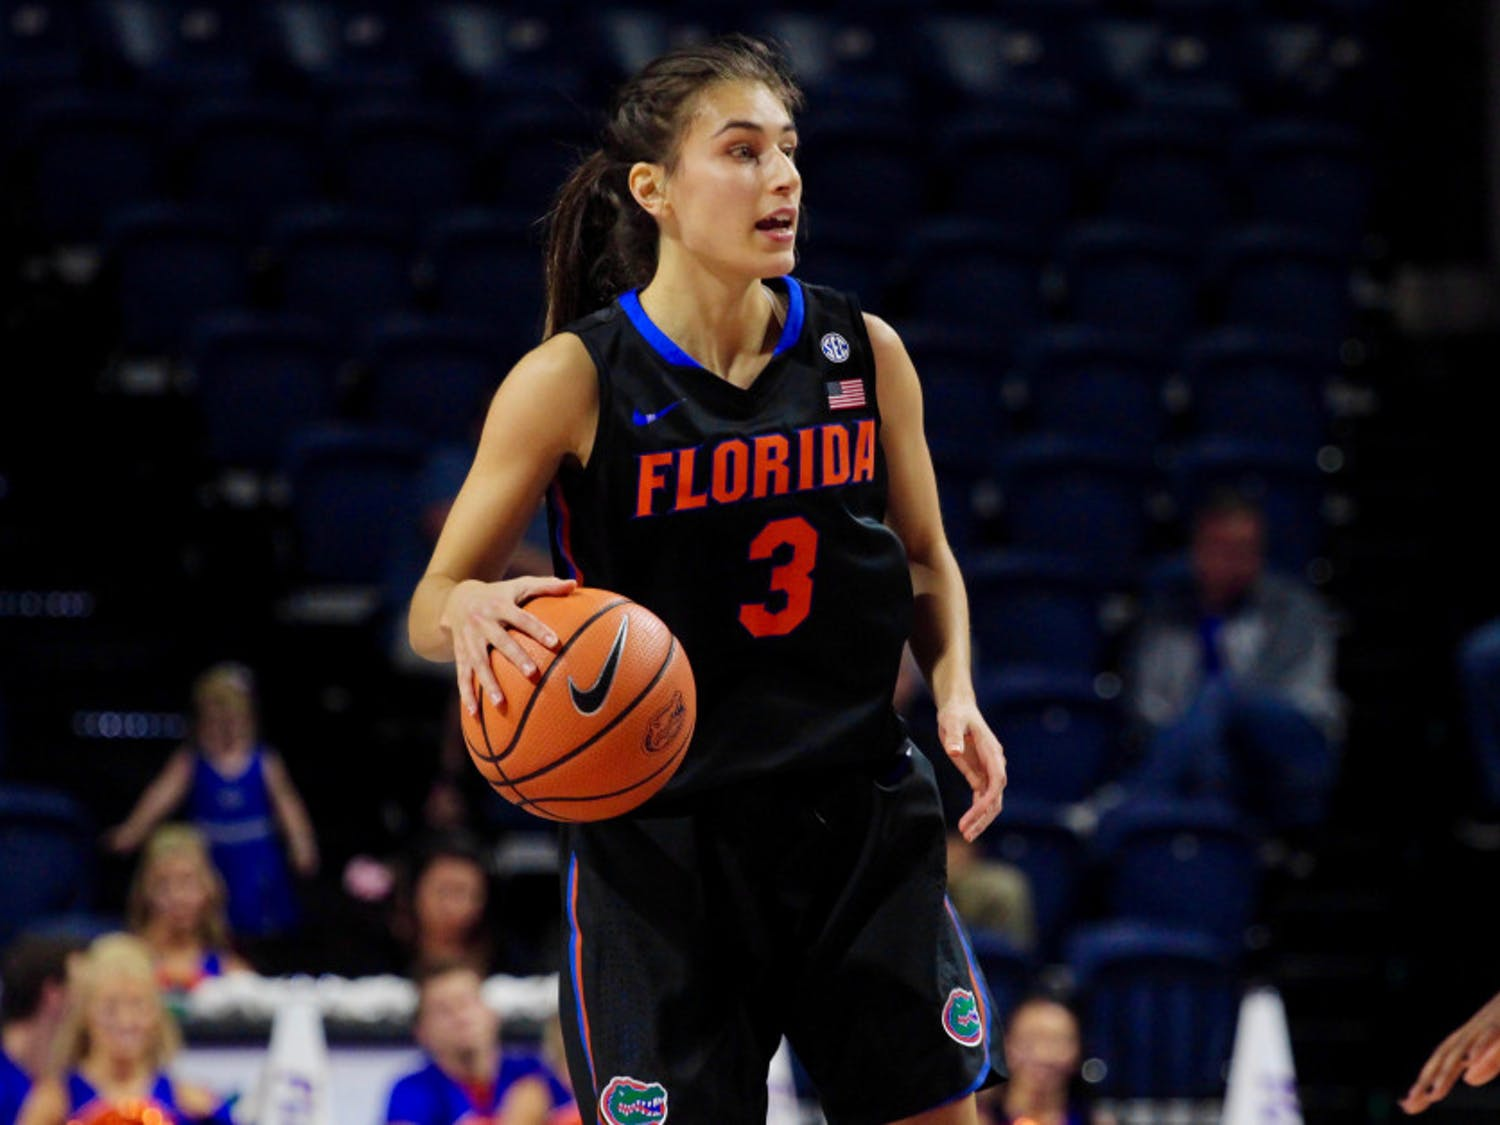 Funda Nakkasoglu, Florida's leading scorer with 15.2 points per game, struggled to put away buckets against Kentucky. She shot 3-of-15 from the field for 8 points.